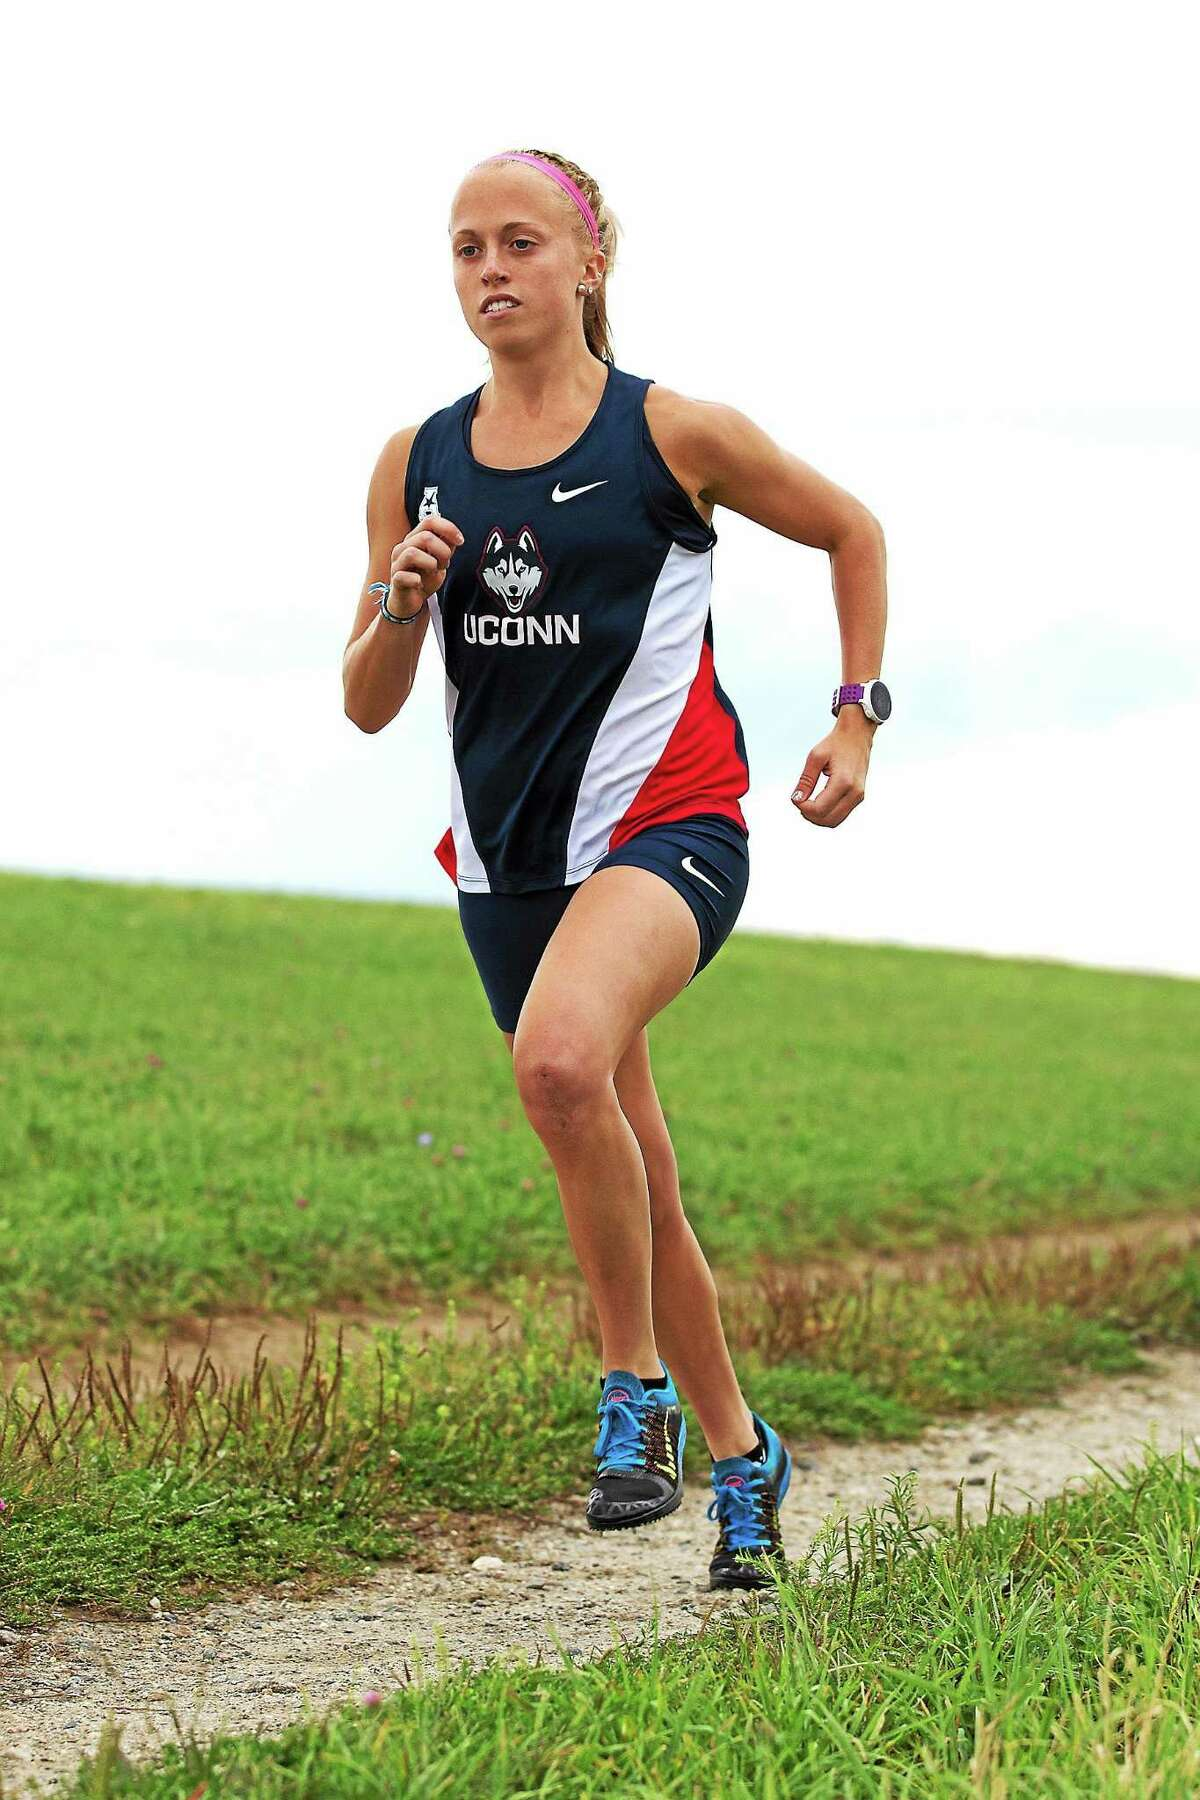 Bunnell grad and UConn senior Lauren Sara will try to win the American Athletic Conference cross country championship on Friday.